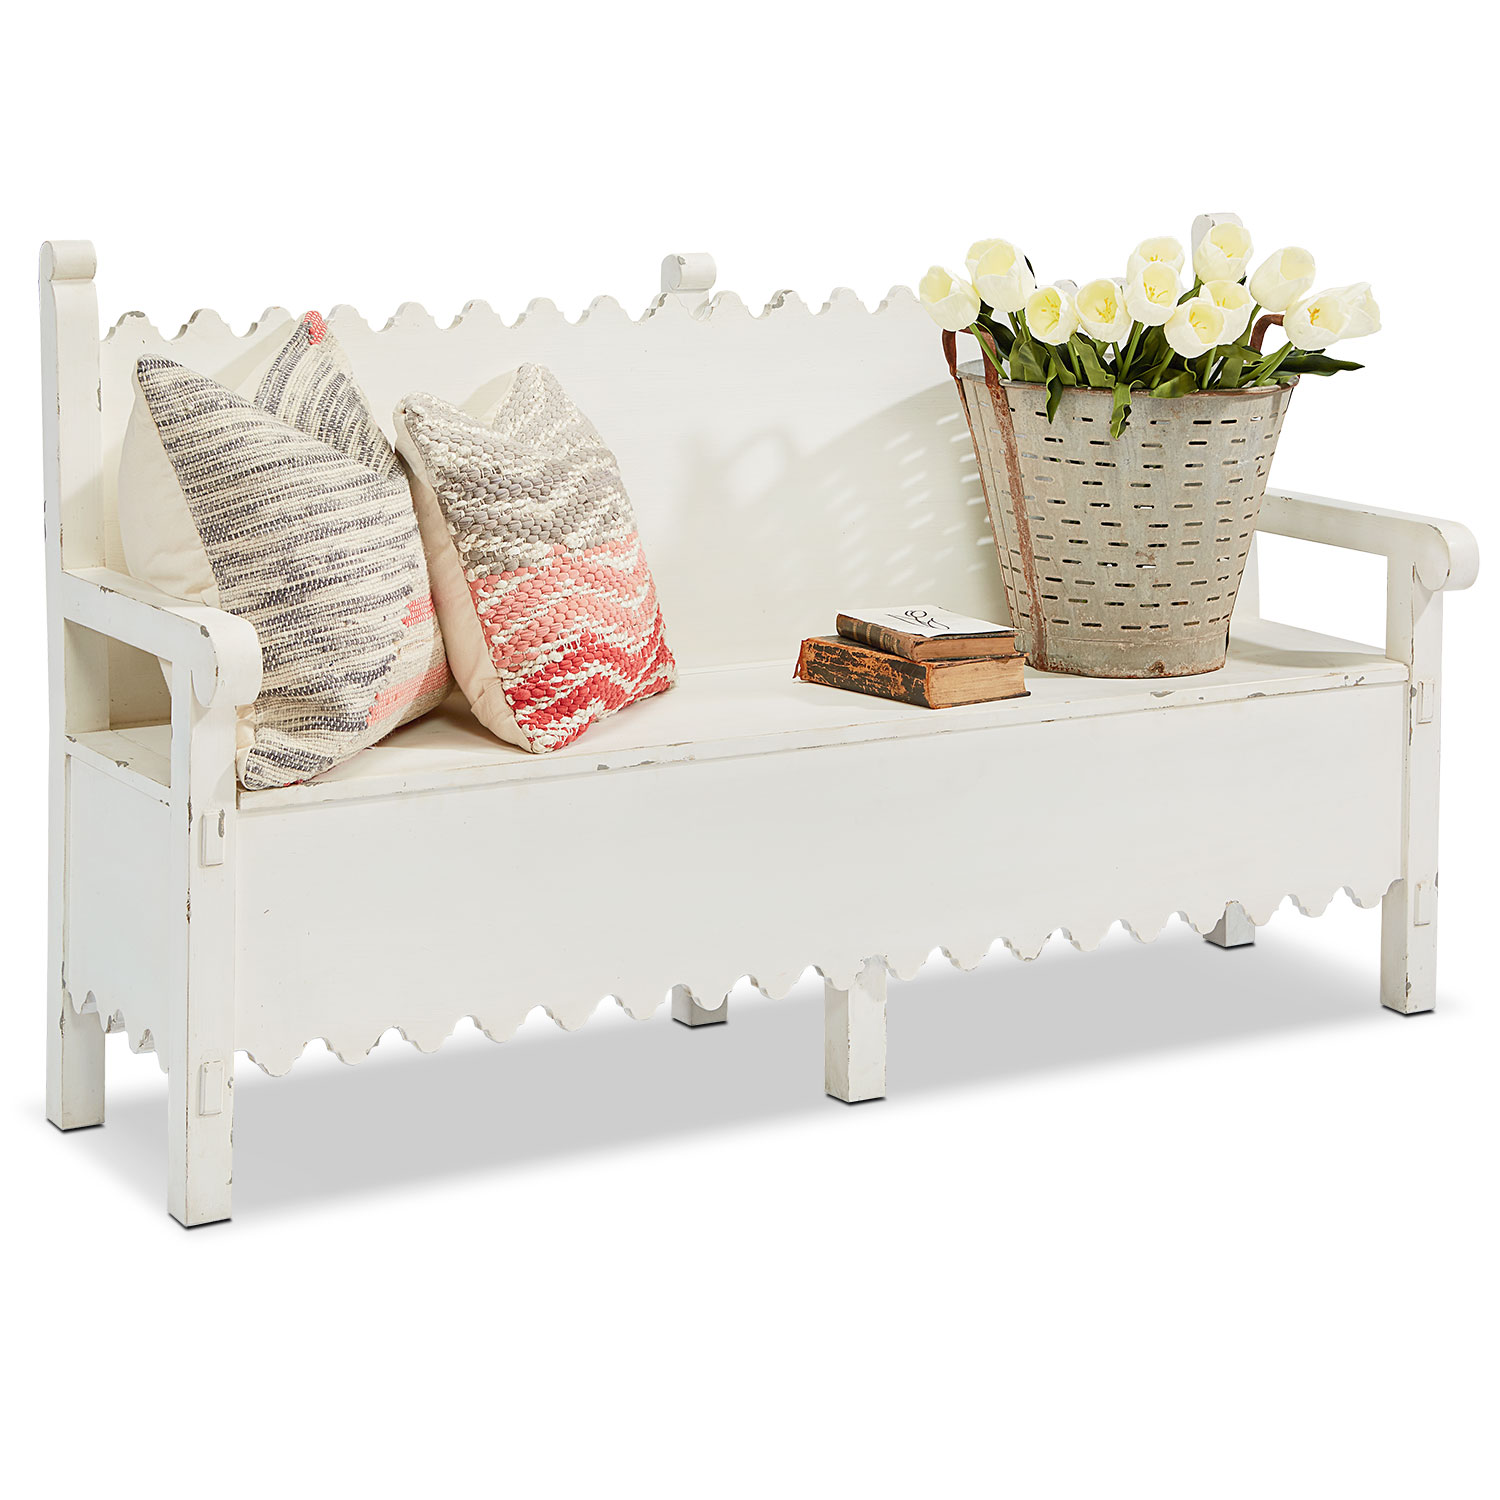 Magnolia Home Farmhouse Bench Image